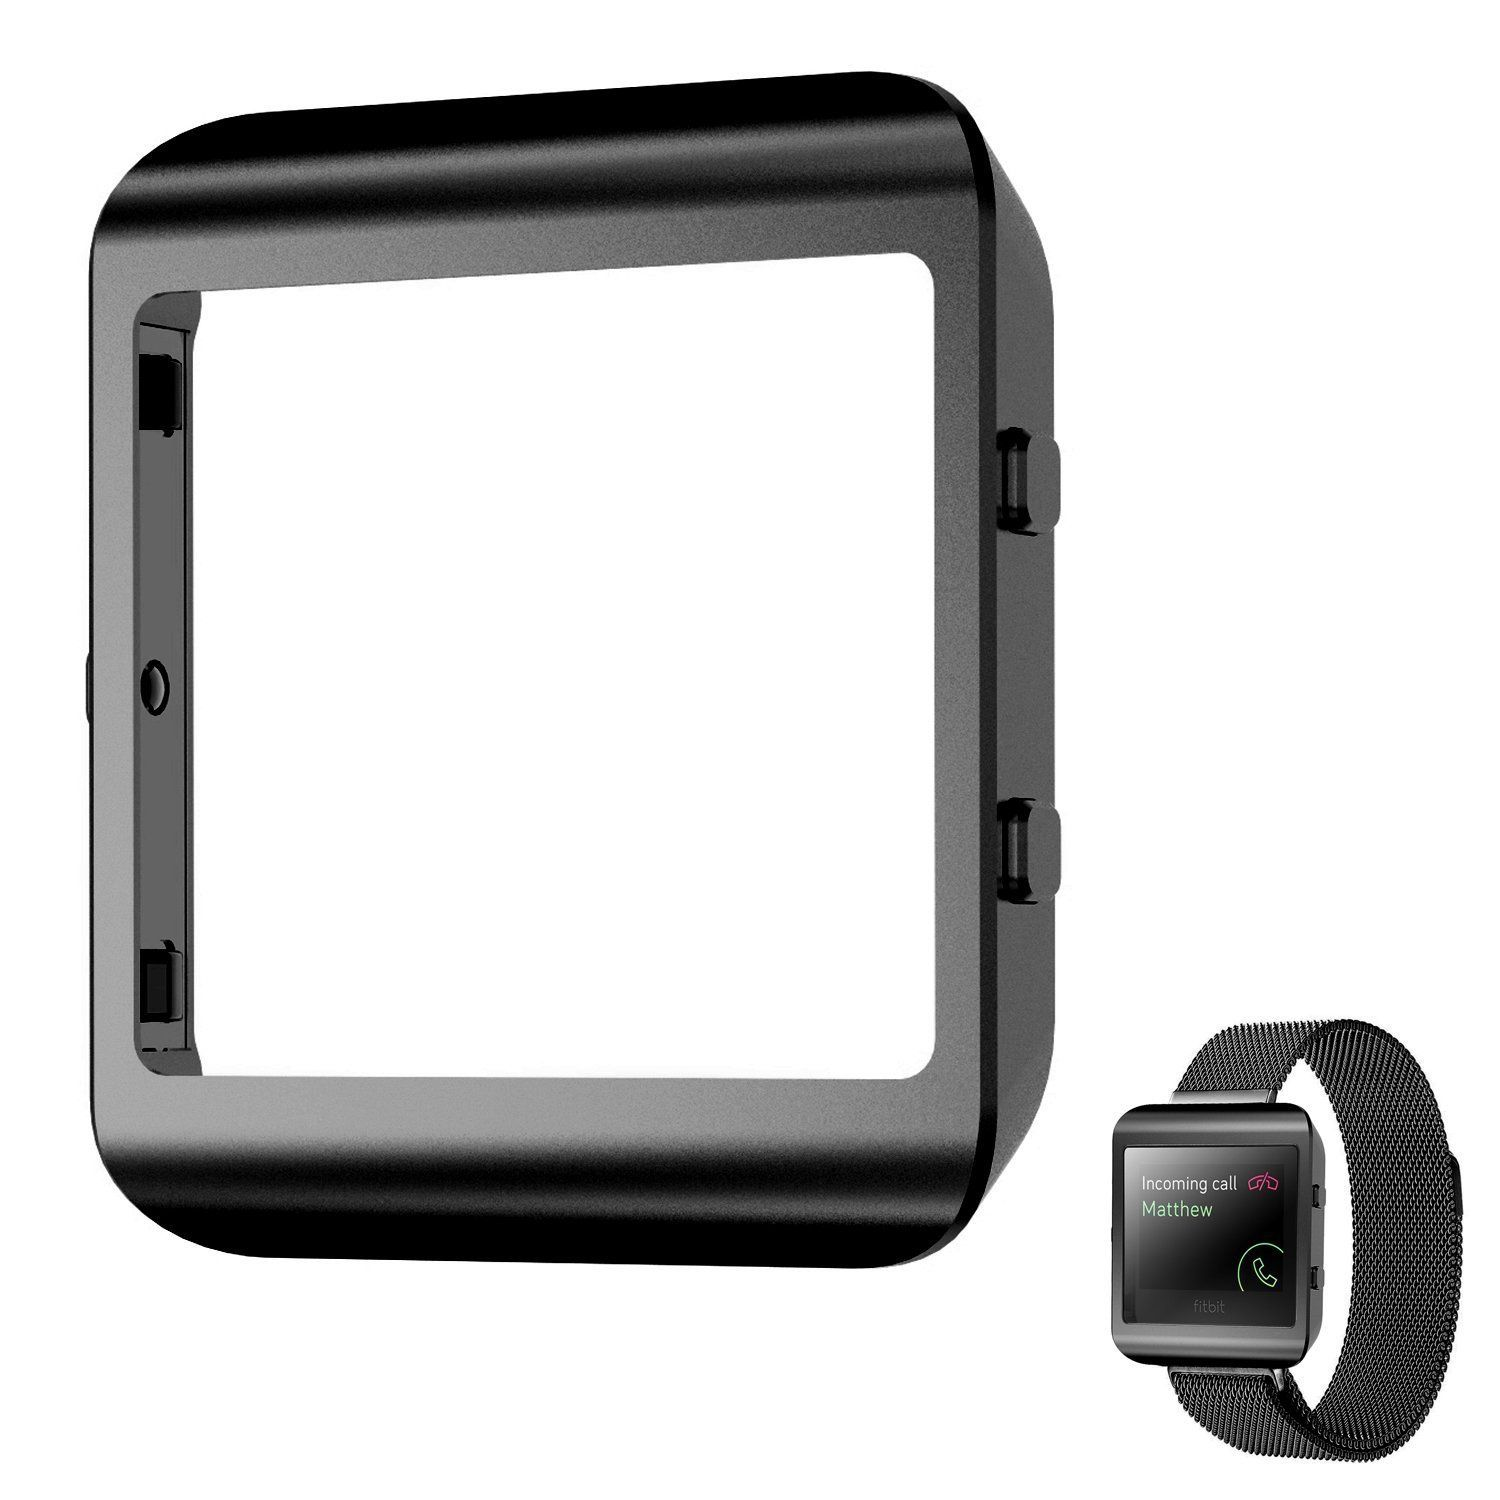 Shareconn New Style Replacement Accessory Steel Frame for Fitbit Blaze Smart Watch Black. Compatible for :Fitbit Blaze Smart Watches ,Note: this is the new style frame has been improved, it can be with you all fitbit blaze strap perfect matching, and the original strap can be perfect match. A collection designed with premium materials for style that stands the test of time. Size:1.83*1.58*0.24 In (4.65*4.01*0.61 cm) Completely fit Watches. Designed to be compatible with Fitbit Blaze....